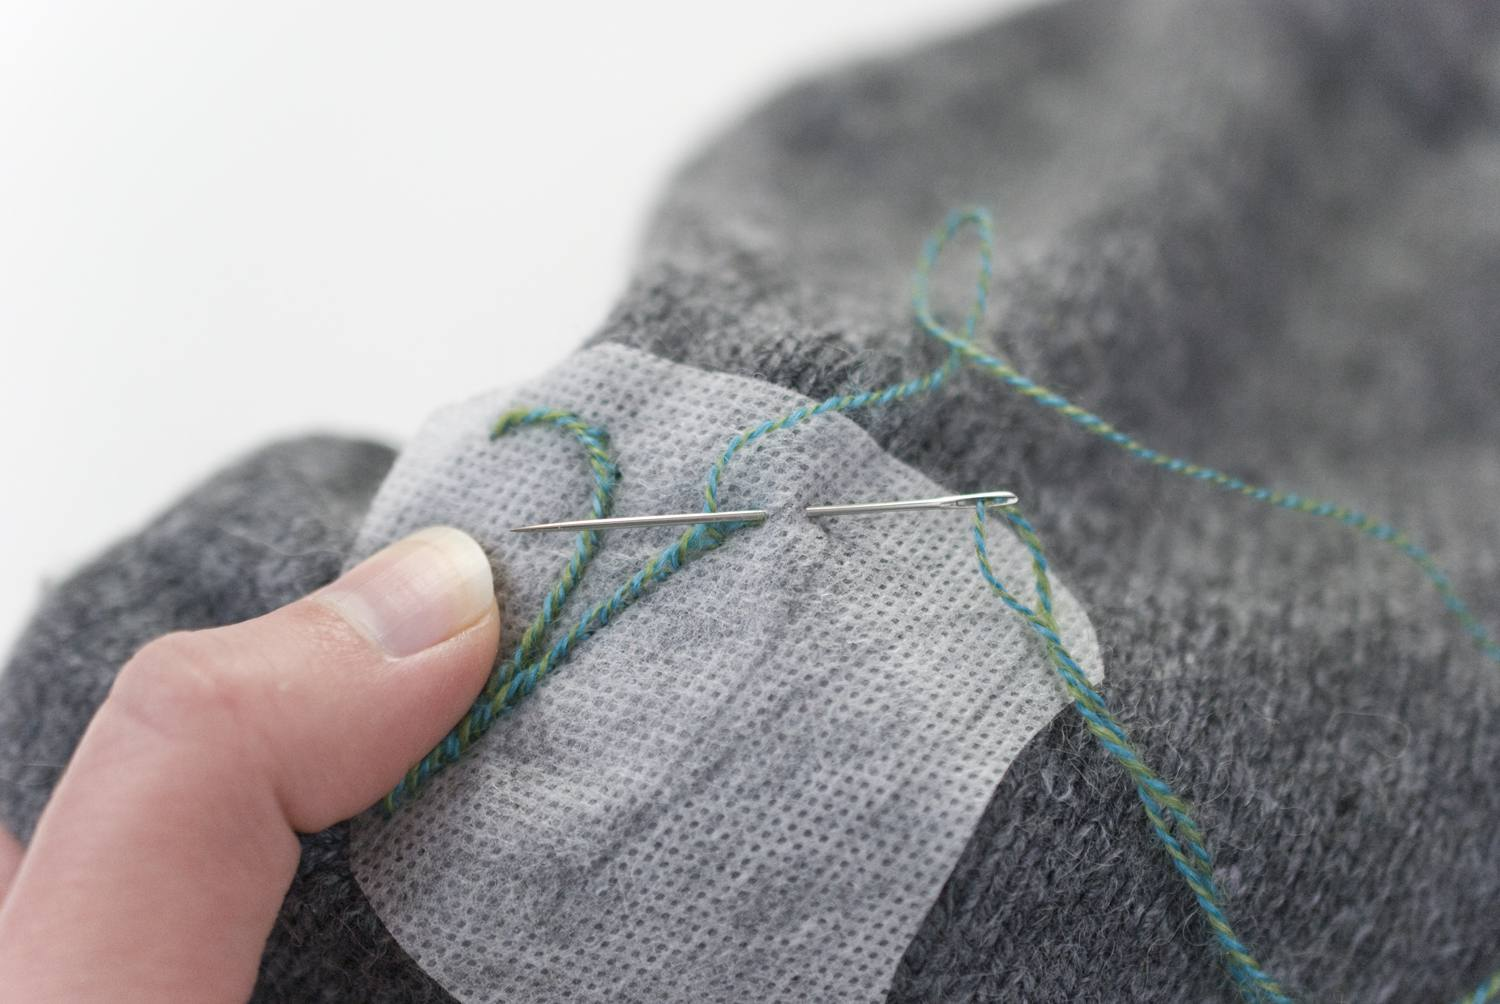 Embroidering on a knit hat